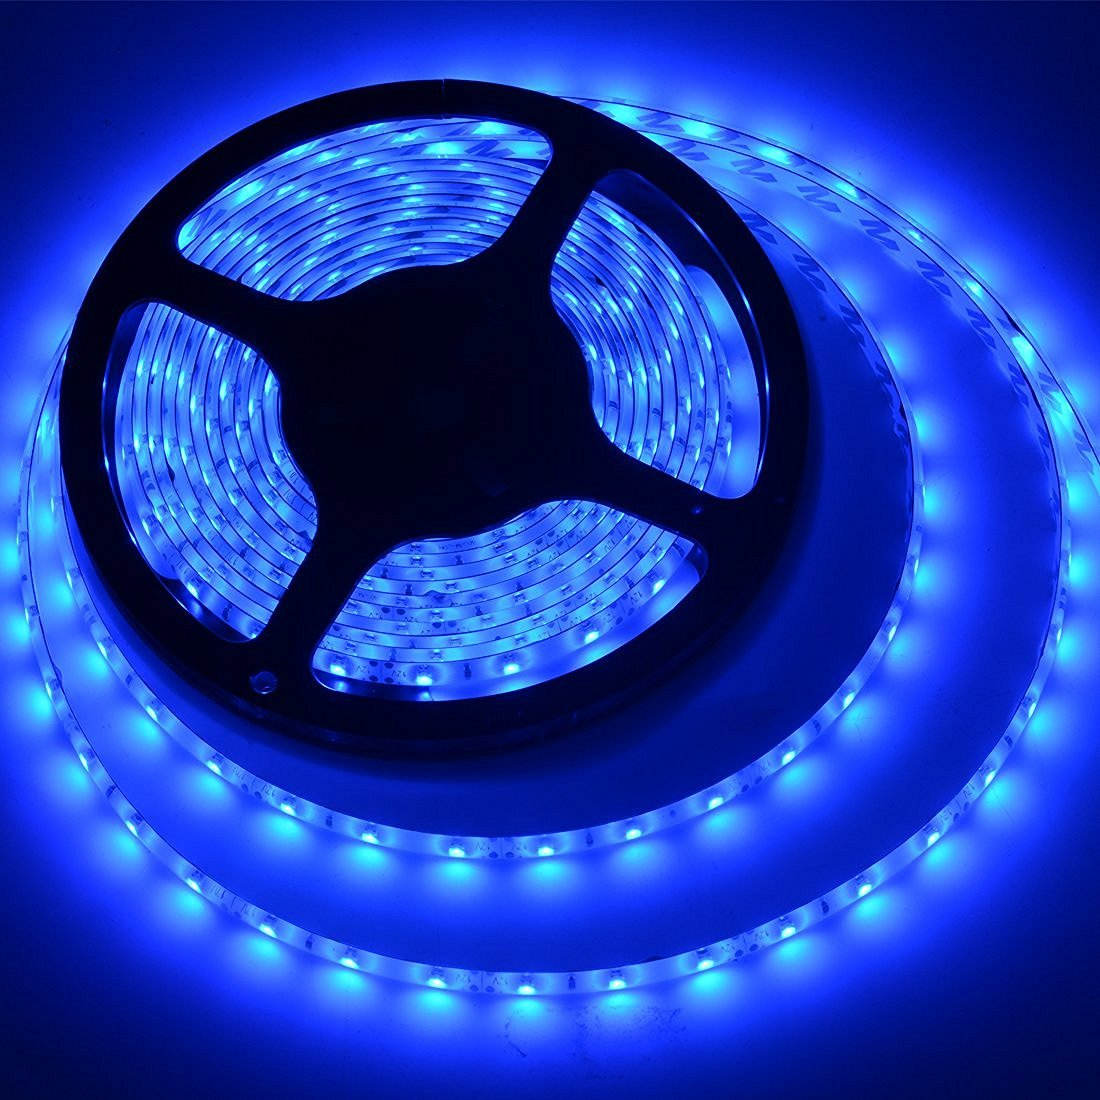 Amazon meili led light strip smd 3528 164 ft 5 meter amazon meili led light strip smd 3528 164 ft 5 meter waterproof 300 leds 12v flexible rope light no power supply blue home improvement aloadofball Gallery